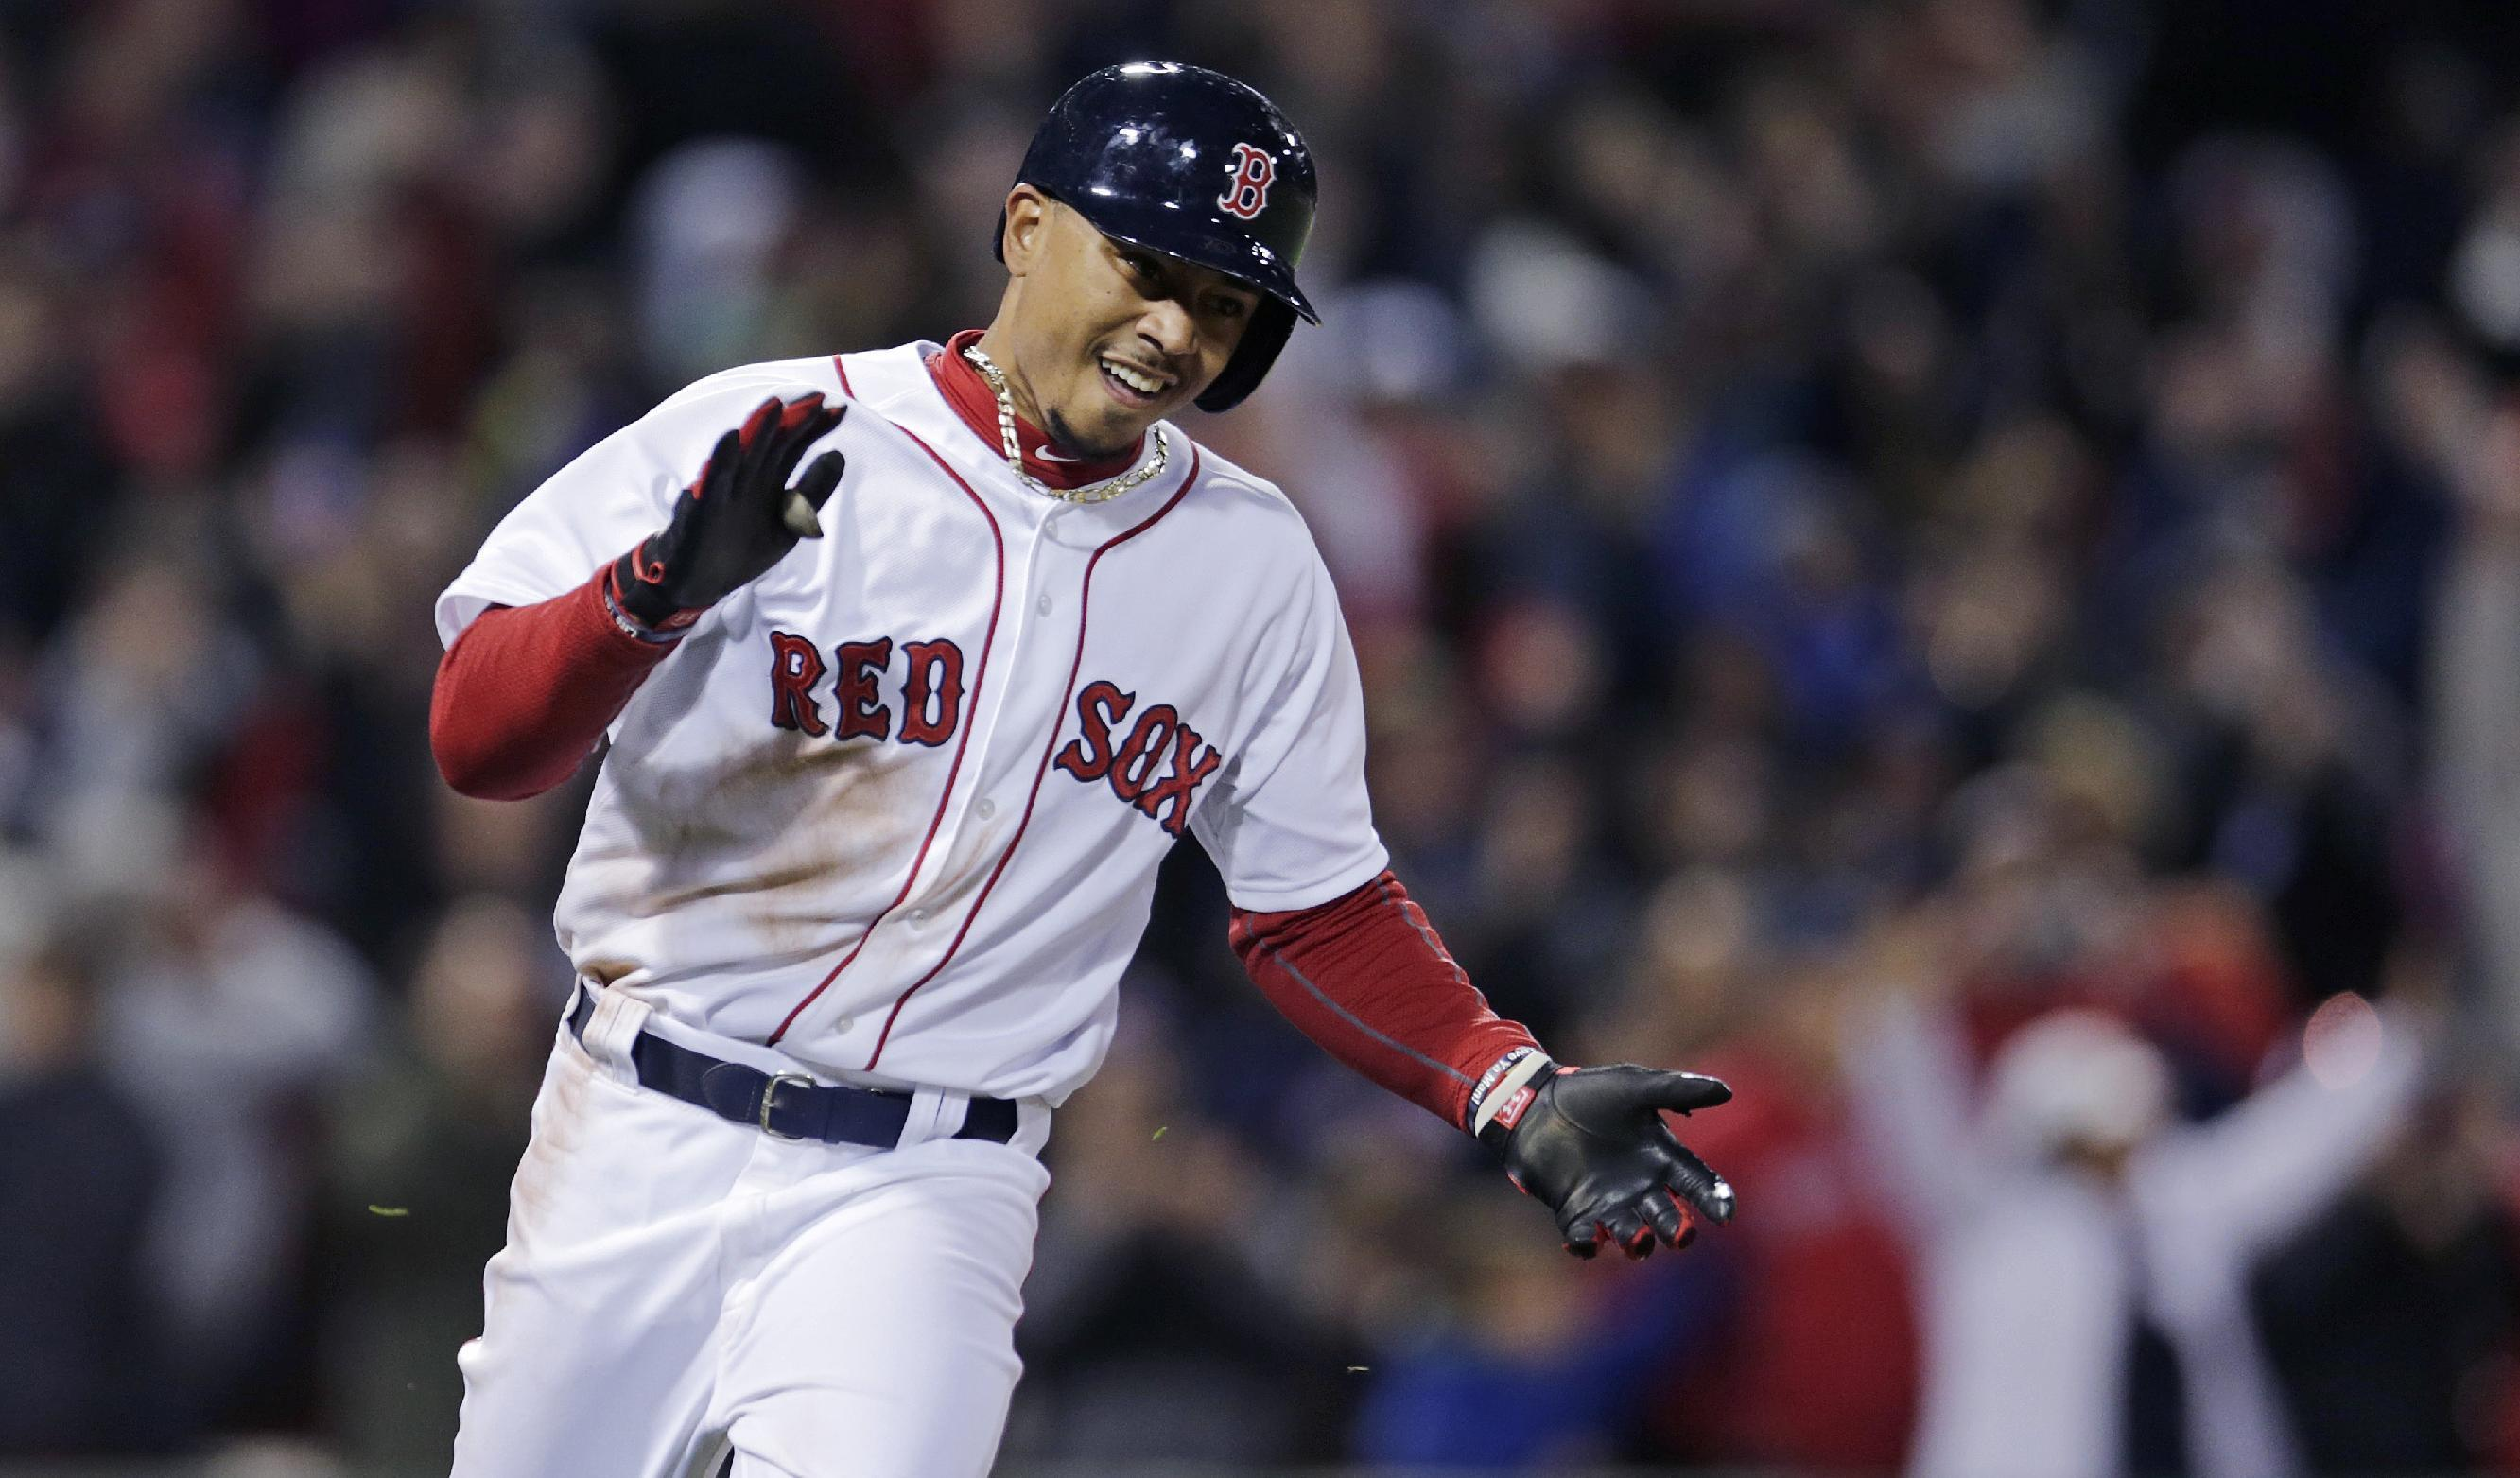 Mookie Betts' walk-off single leads Red Sox over Blue Jays